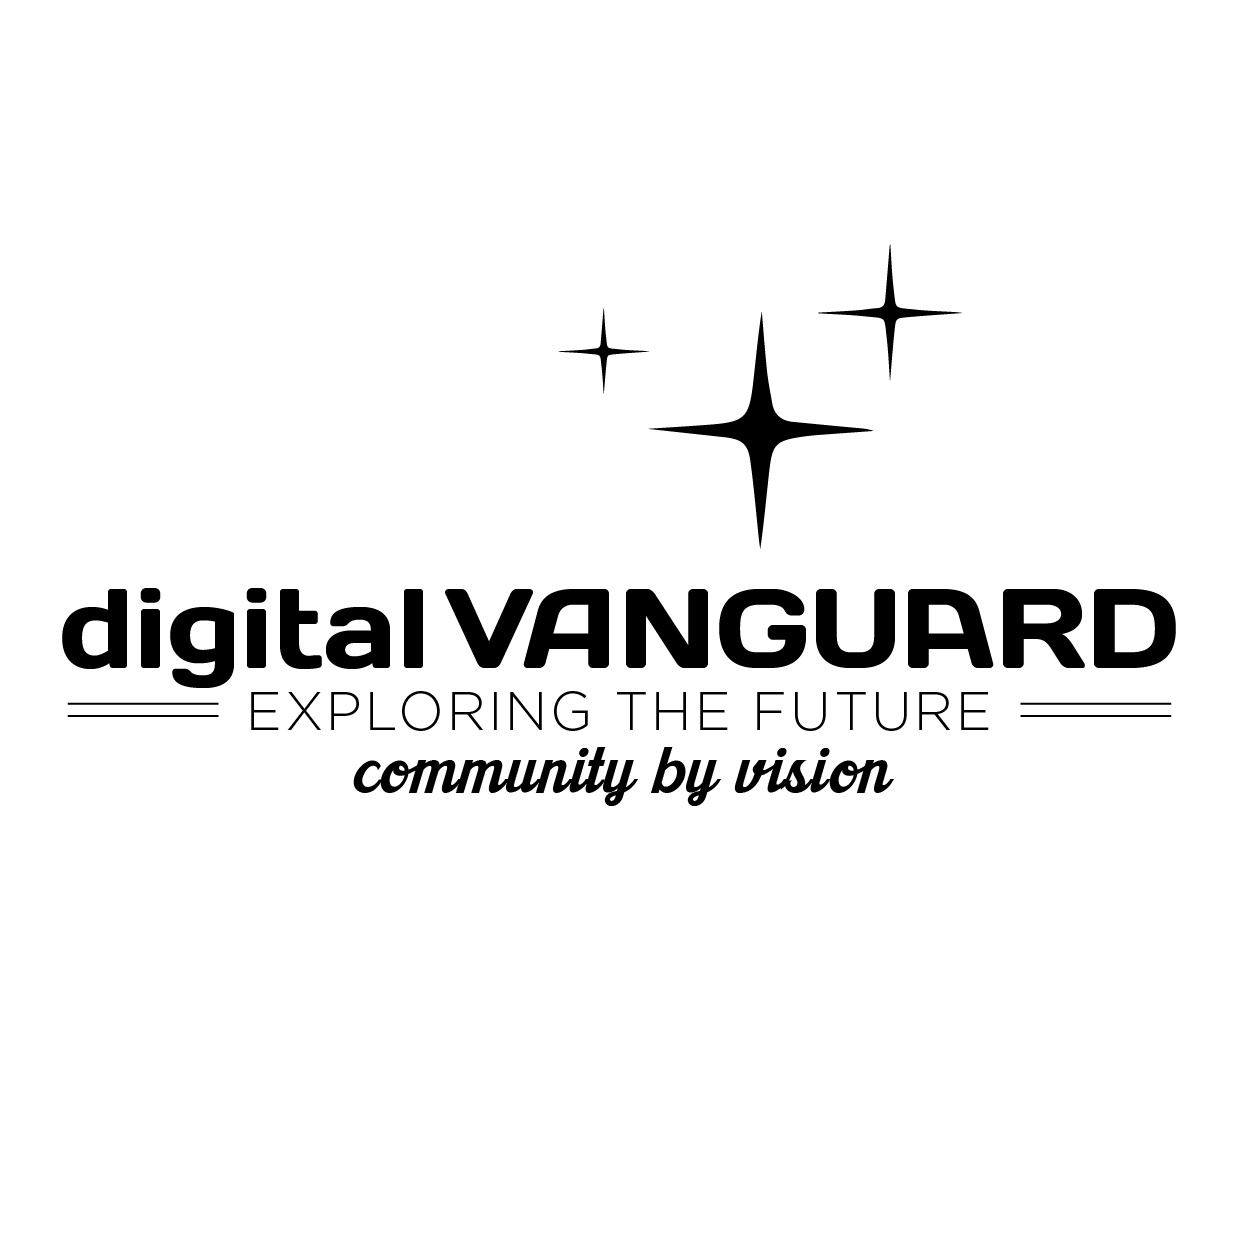 logo-2016-digital-vanguard-black